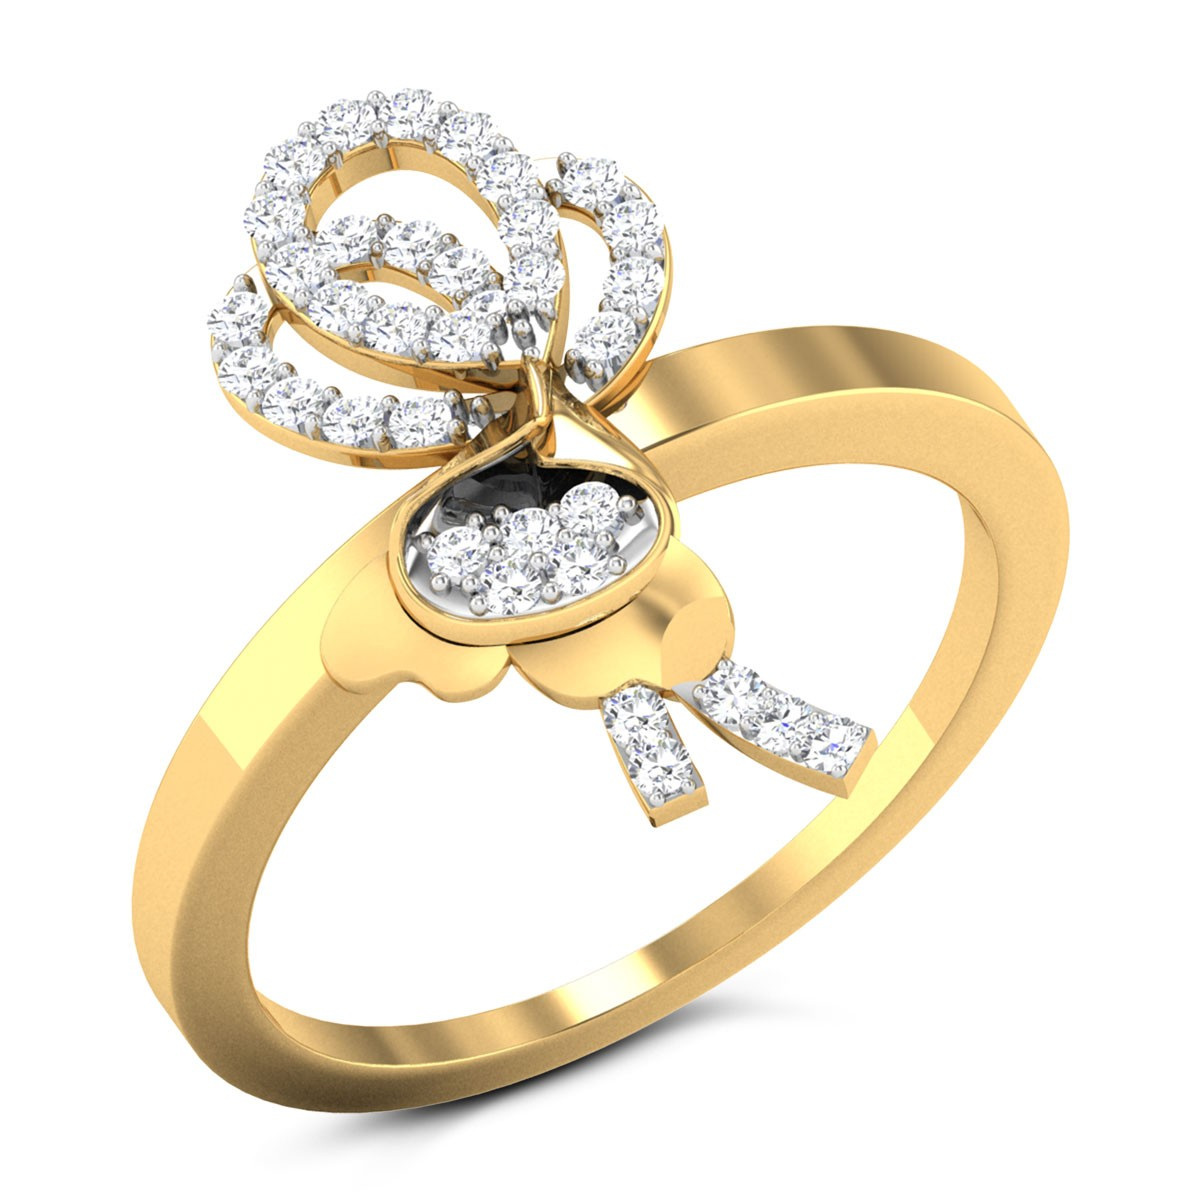 Buy Nadine Diamond Ring in 2.92 Grams Gold Online